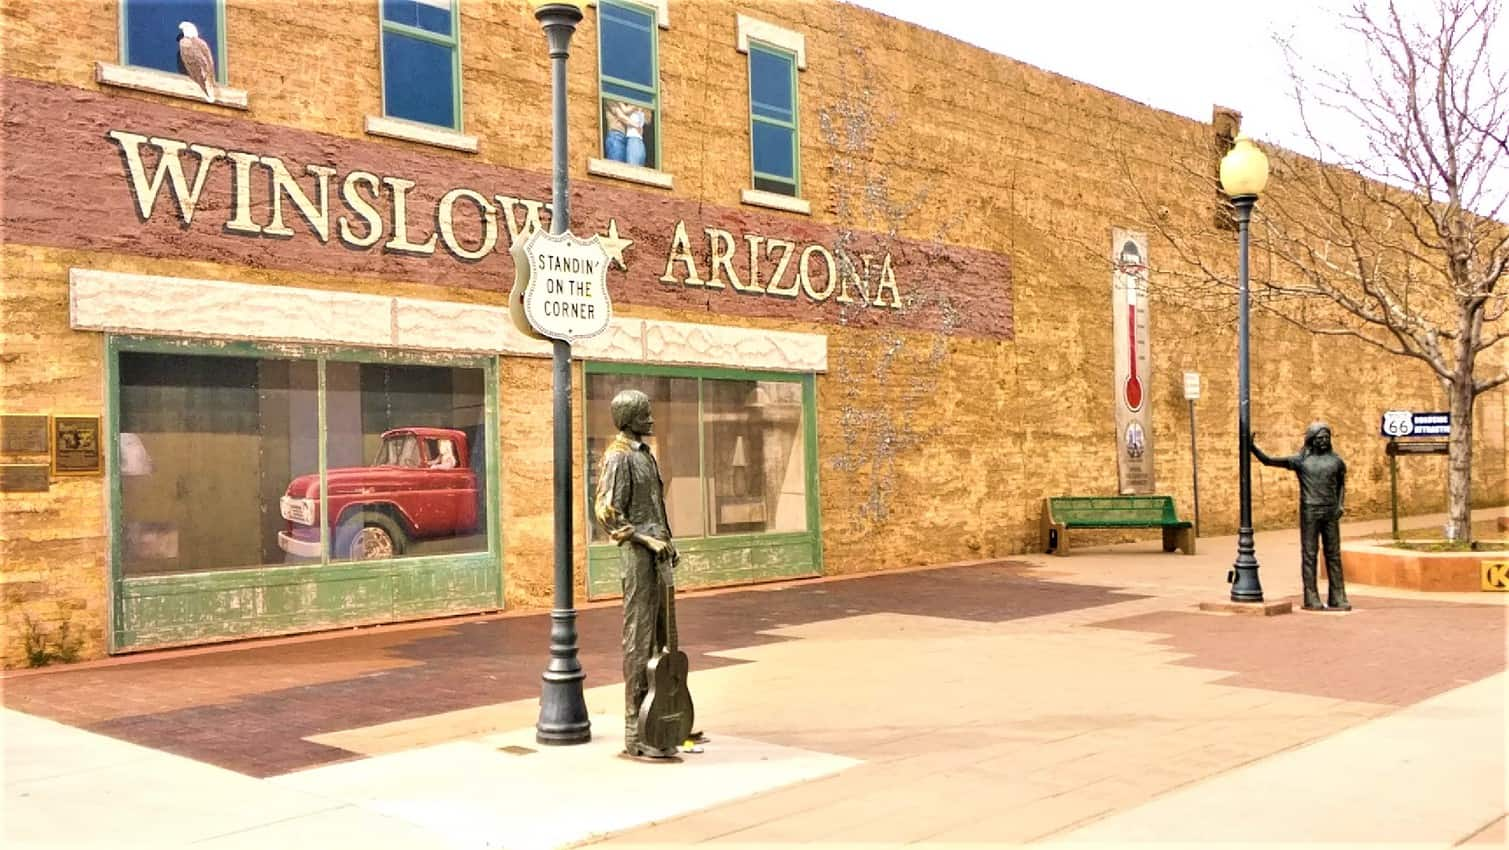 No one was standing on the corner in Winslow, AZ, except statues 14. Wigwam Motel, Holbrook, AZ